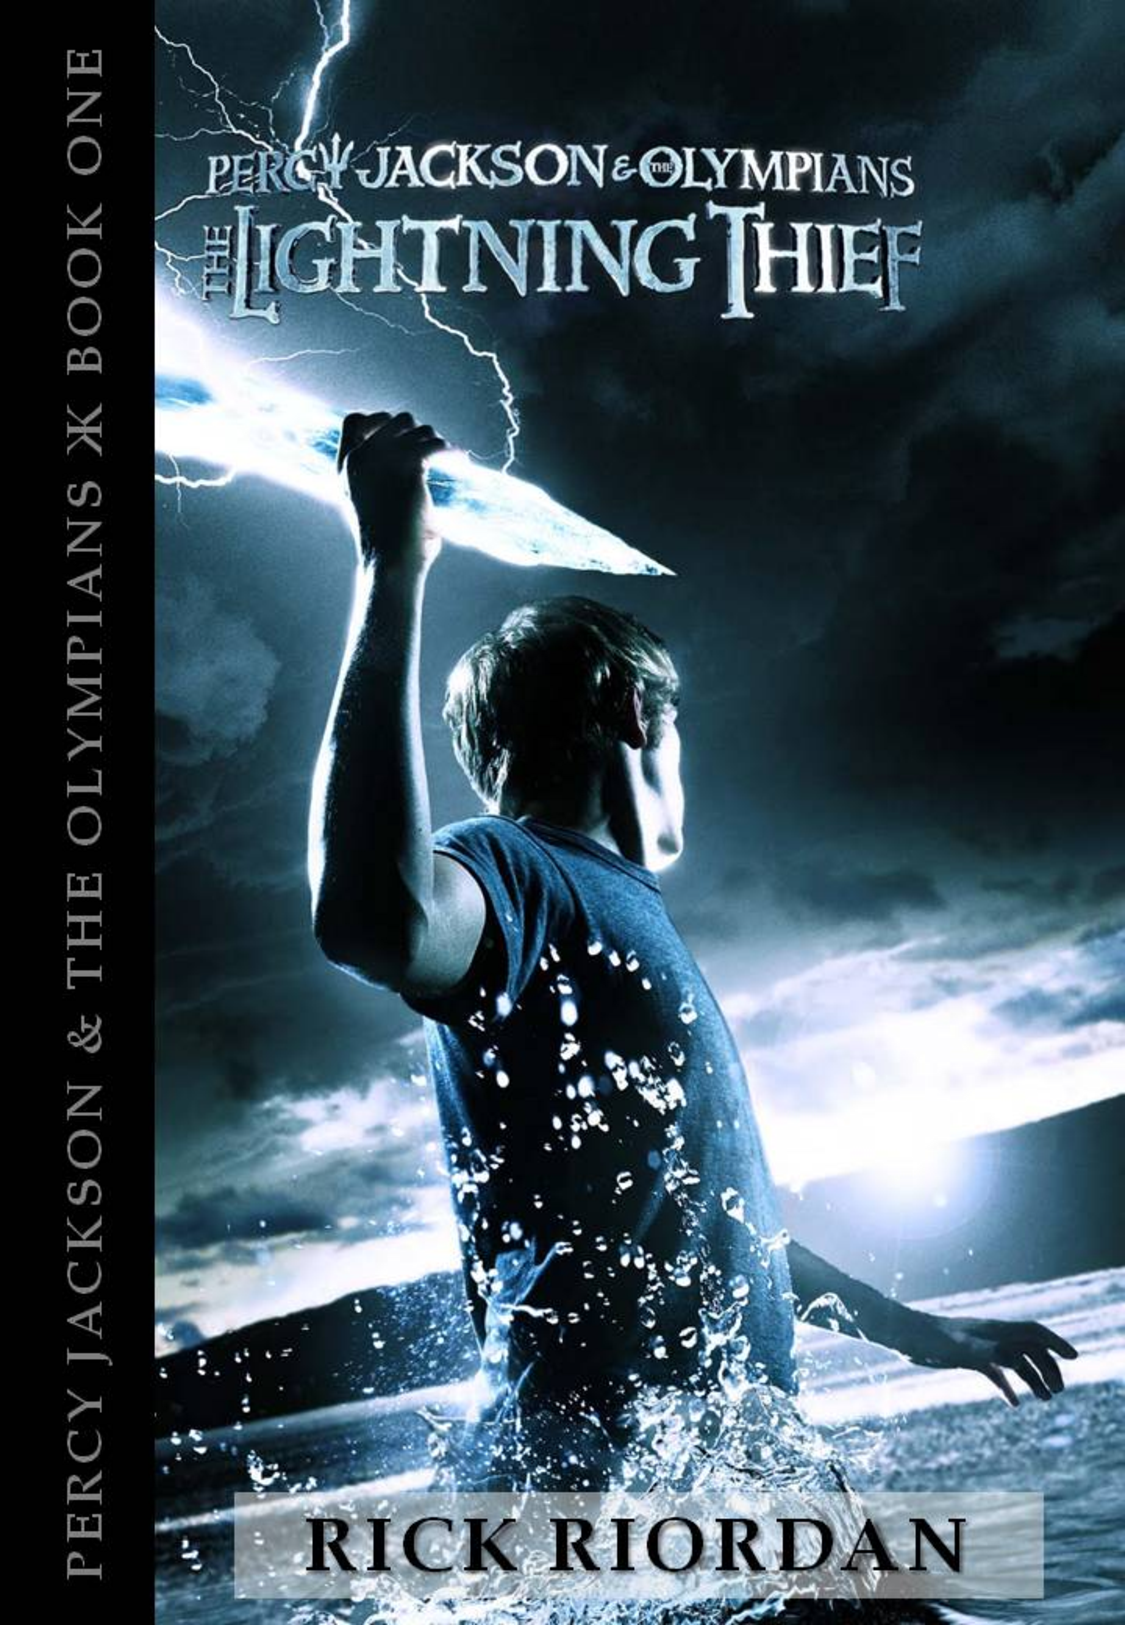 percy jackson and olympians the lightning thief thinglink